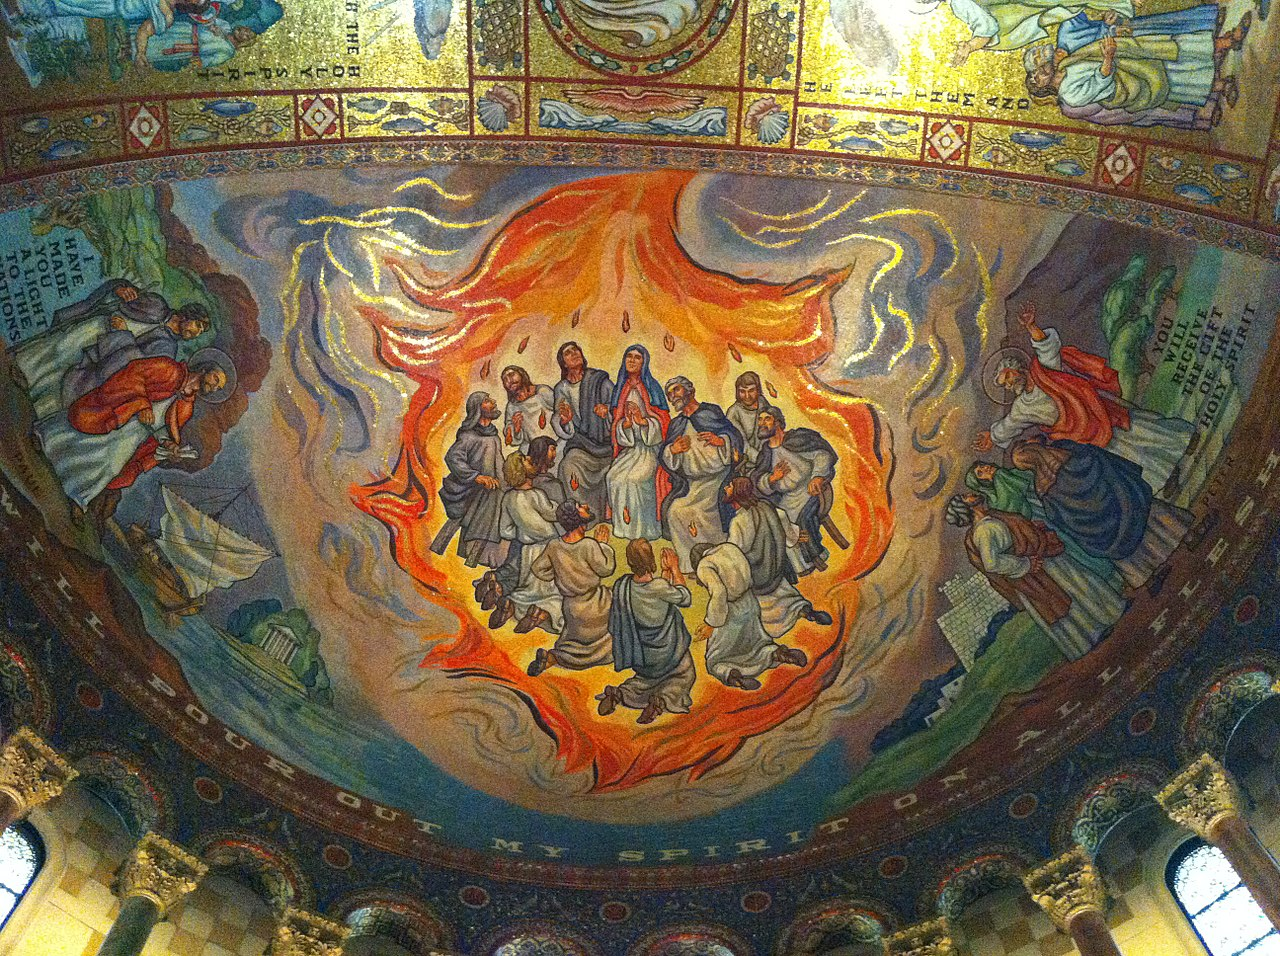 A mosaic representing Pentecost on the ceiling of the cathedral; By Pete unseth - Own work, CC BY-SA 4.0, Link